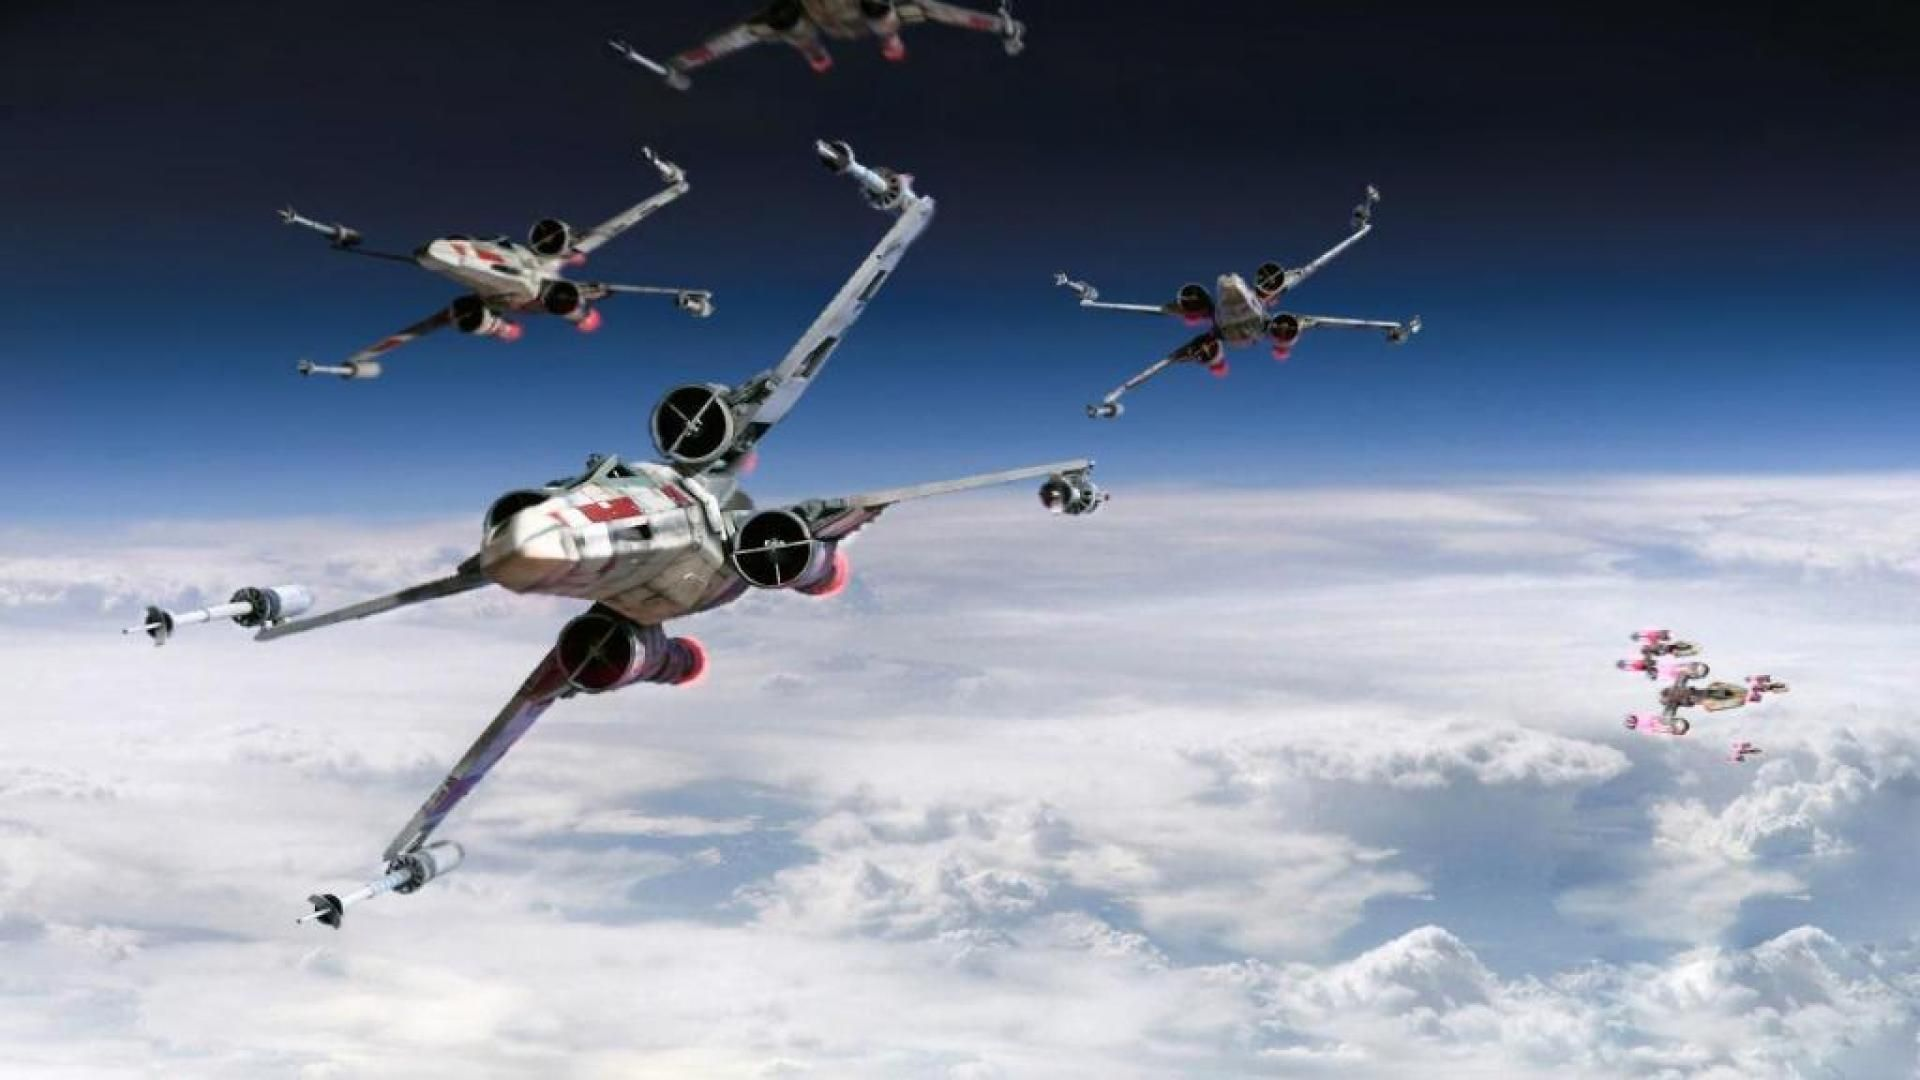 X Wing Wallpaper Hd Hd Wallpapers звездные войны